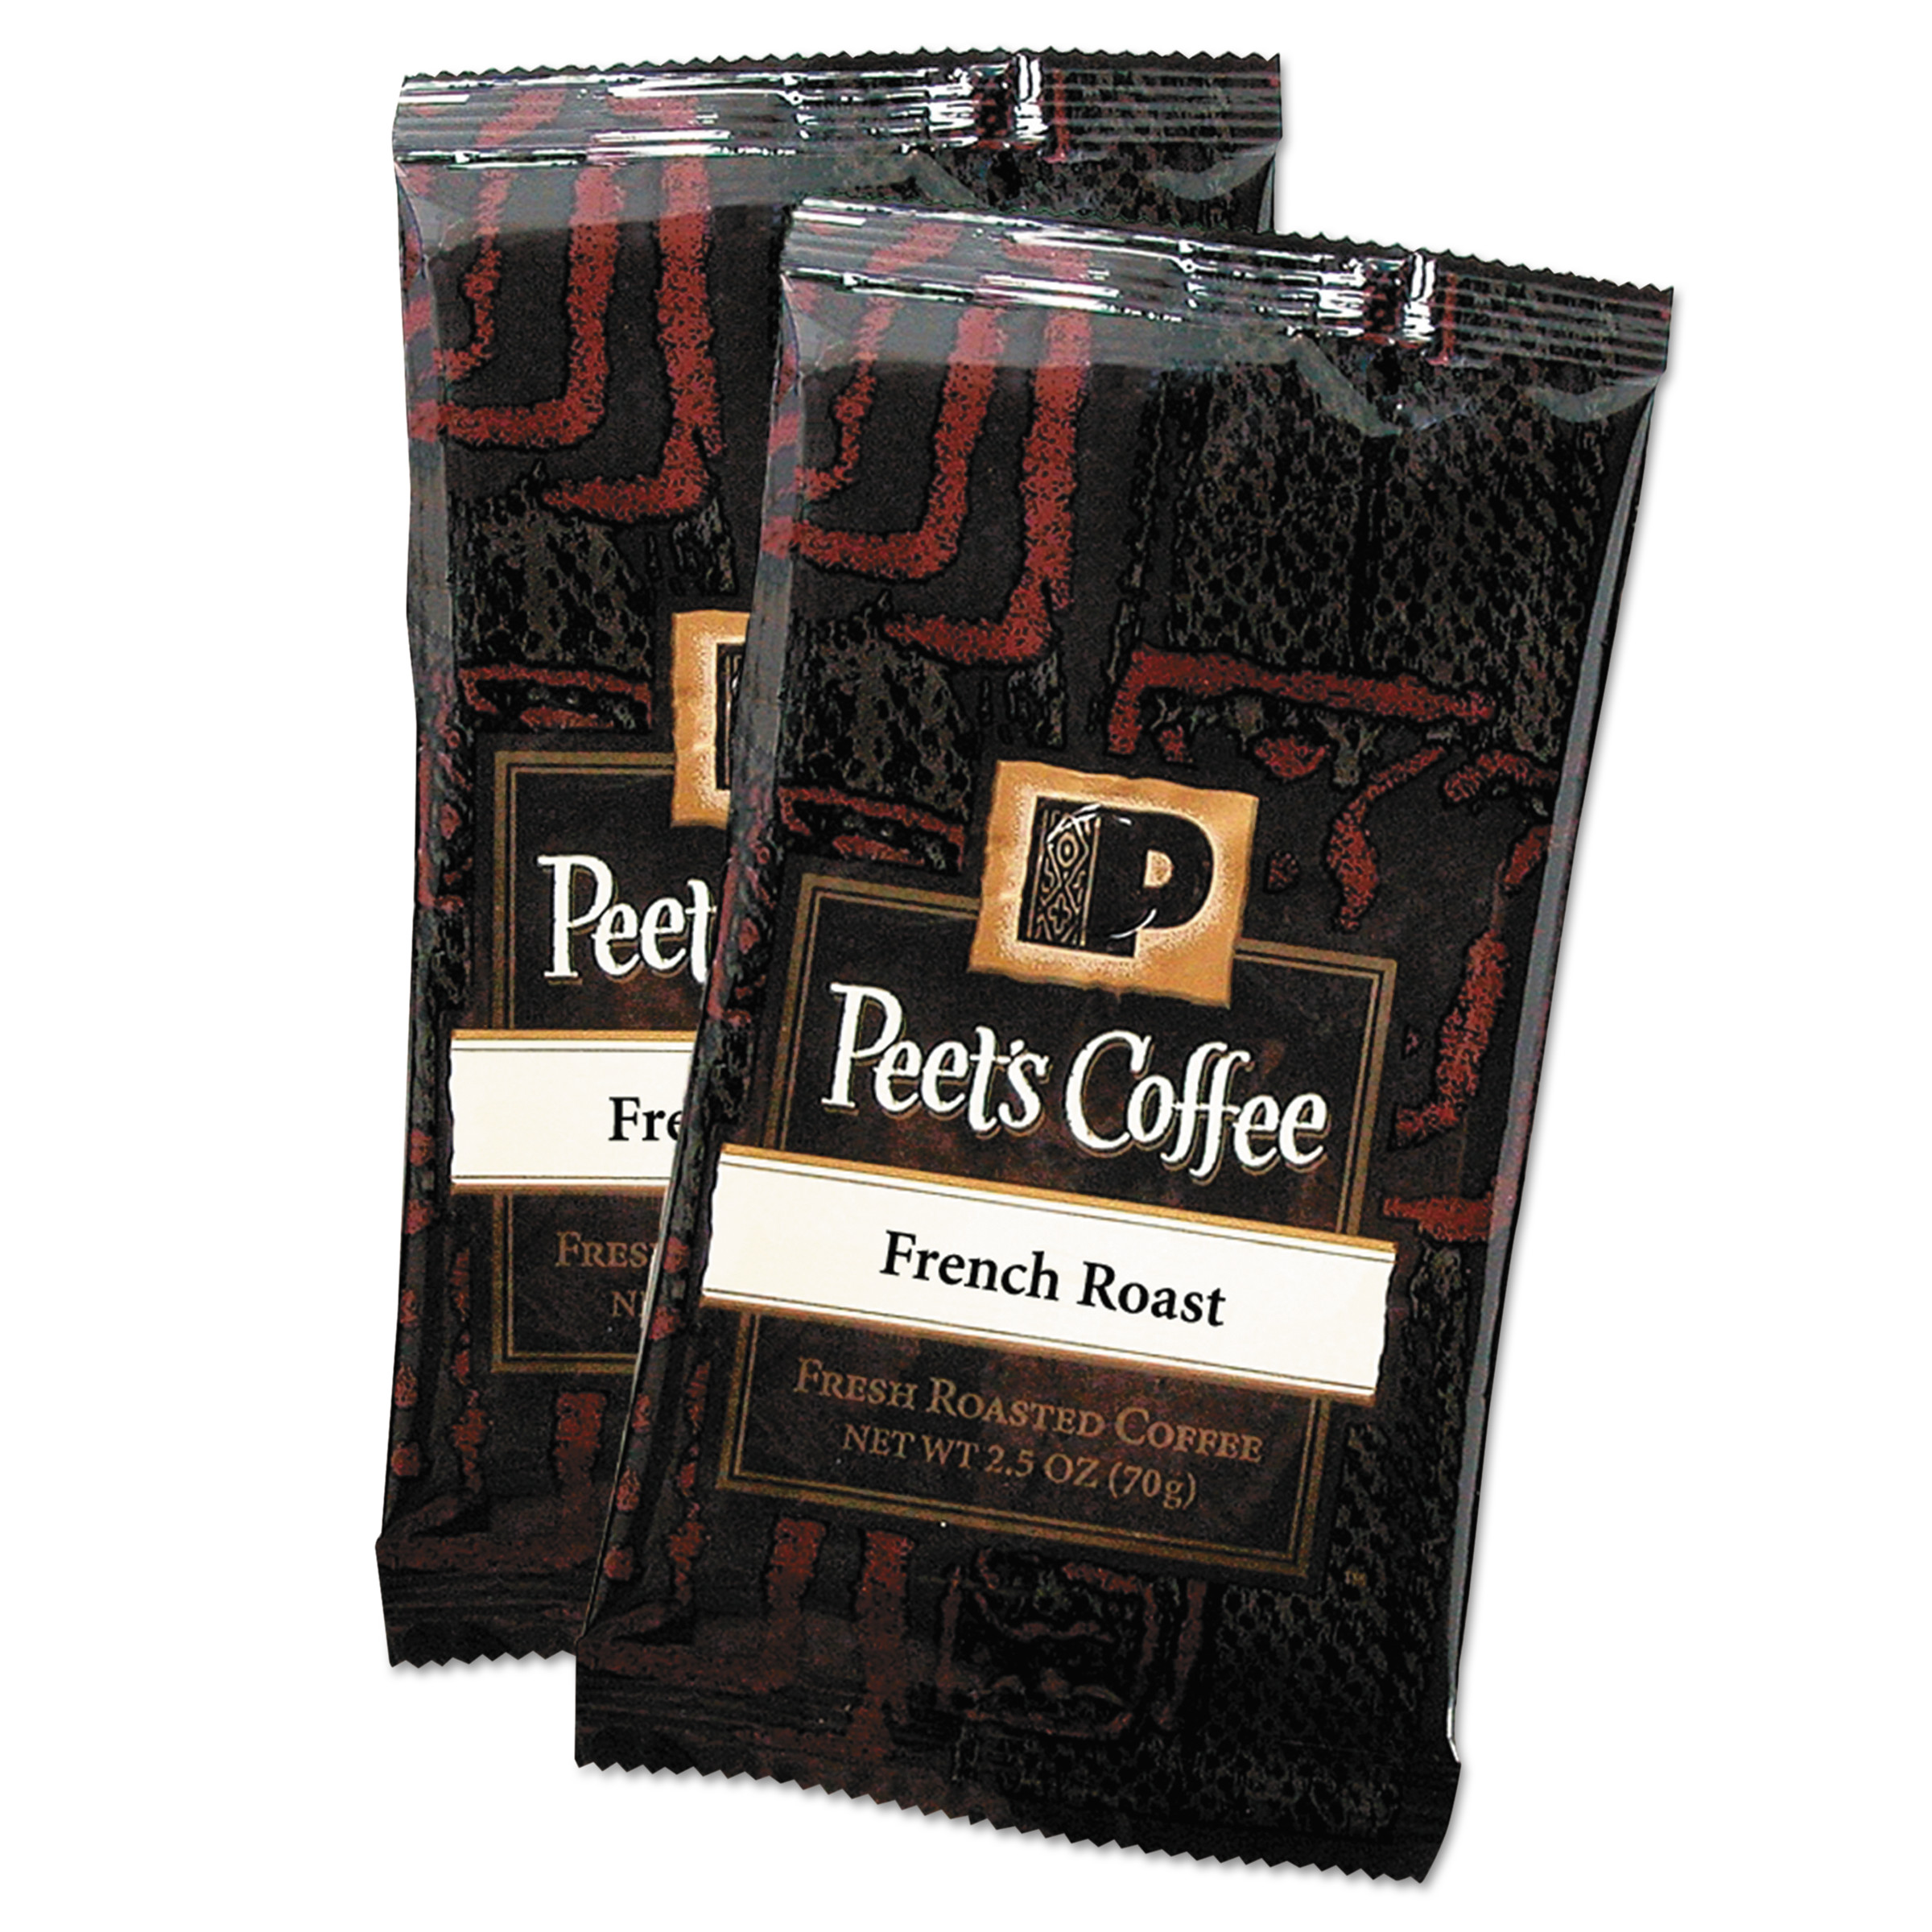 Peet's Coffee & Tea Coffee Portion Packs, French Roast, 2.5 oz Frack Pack, 18/Box